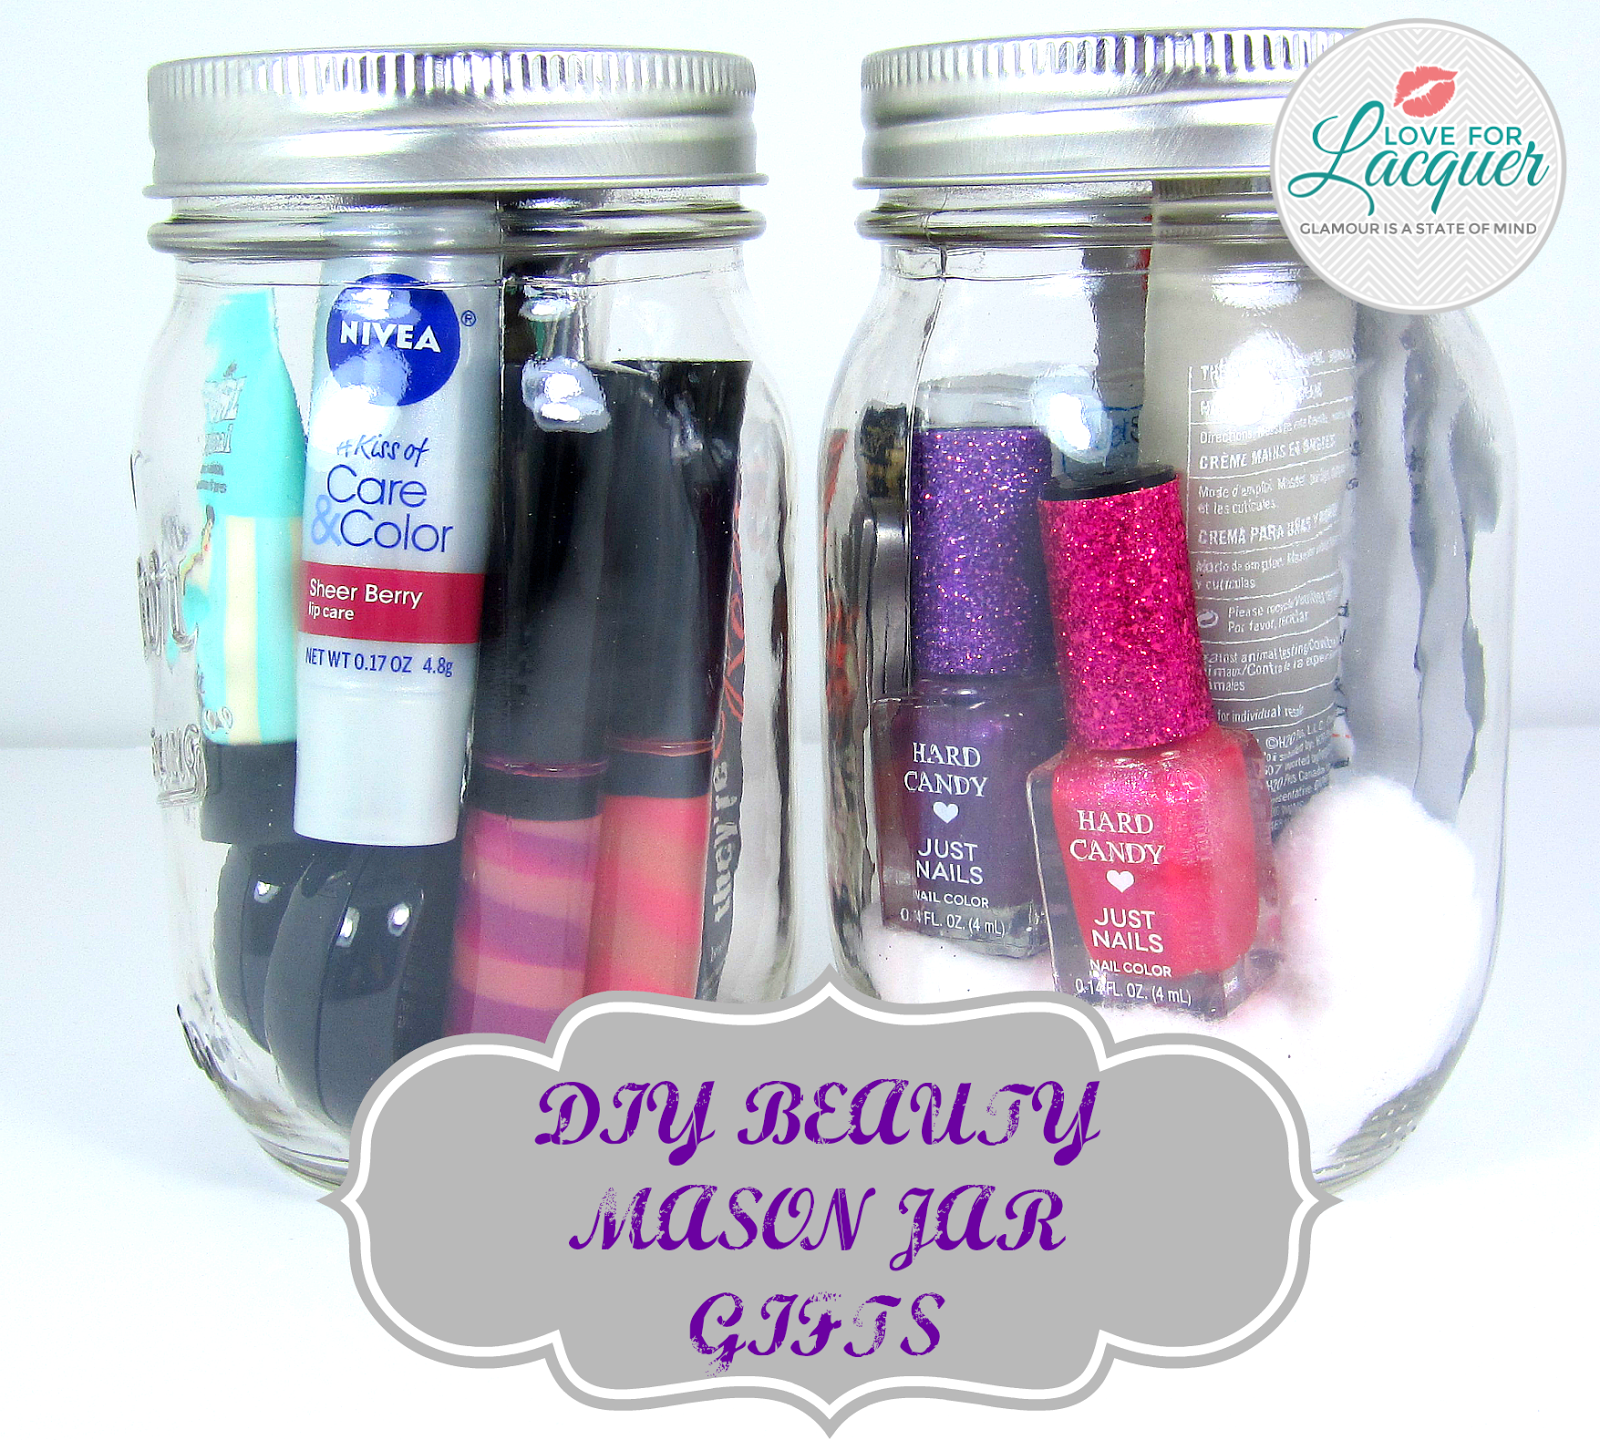 DIY : Mason Jar Holiday Gifts For Beauty Lovers! - Love for Lacquer